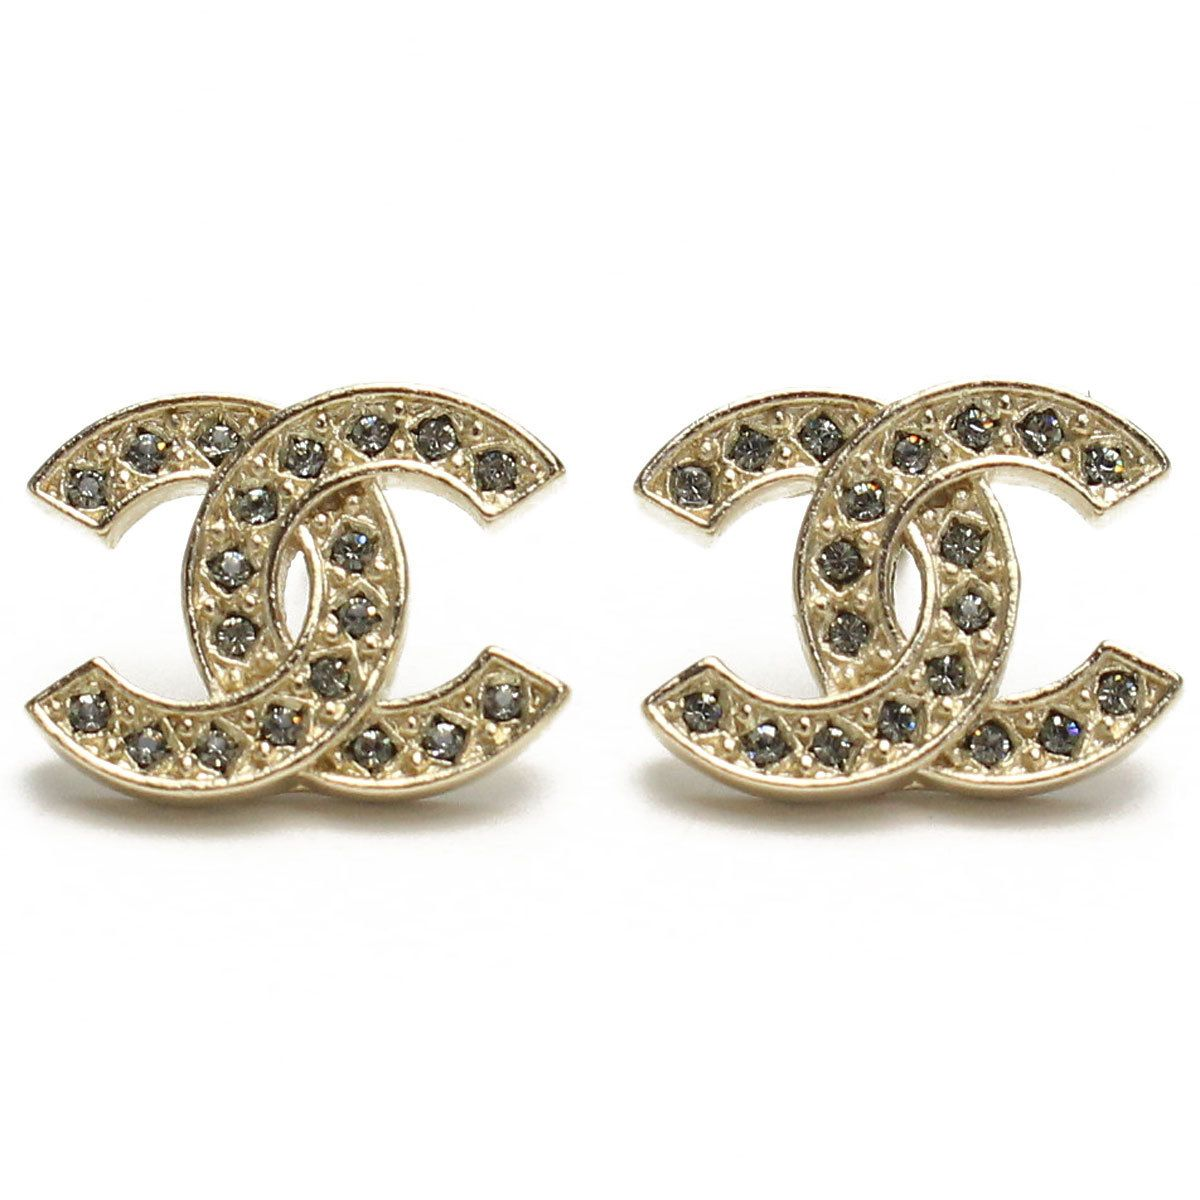 NEW Authentic Chanel Classic LARGE CC Logo Crystal Strass